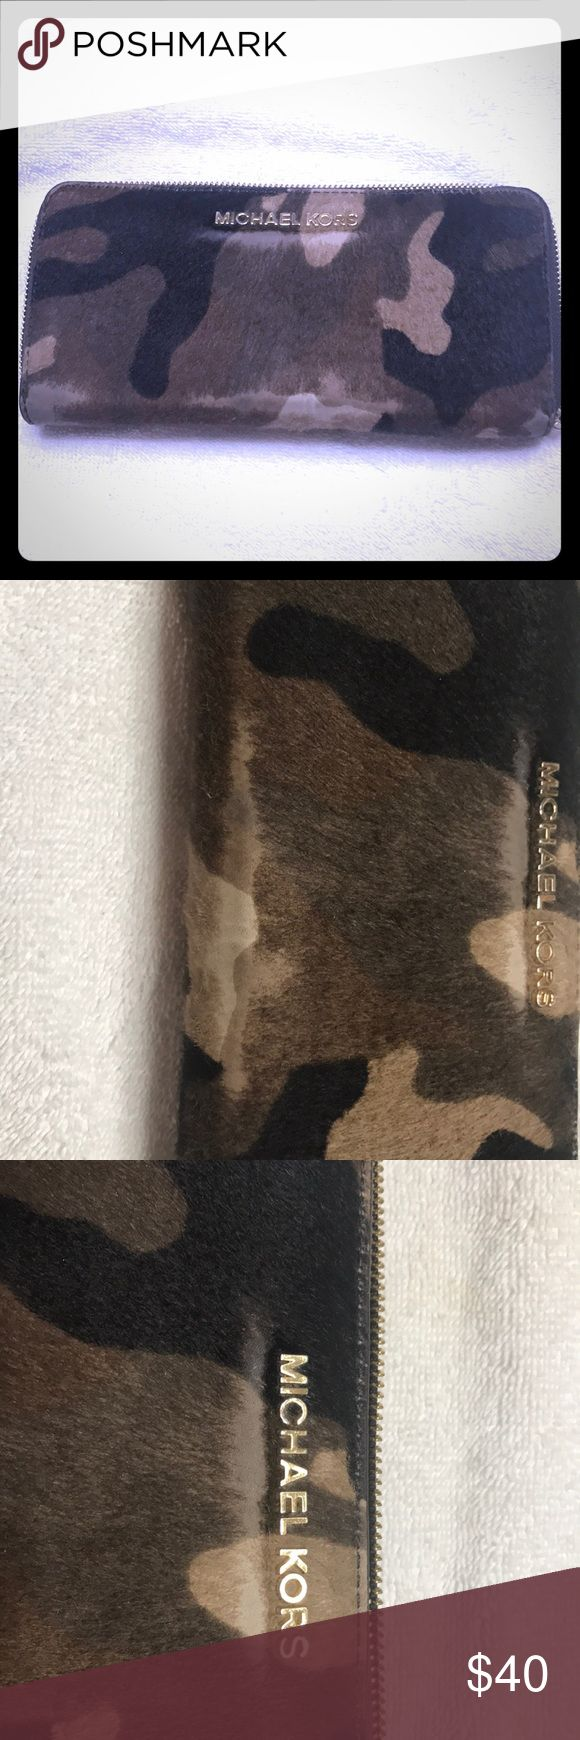 Michael Kors pint hair camo wallet Pre owned Michael Kors pint hair camo print wallet.  Photos show condition. Michael Kors Bags Wallets